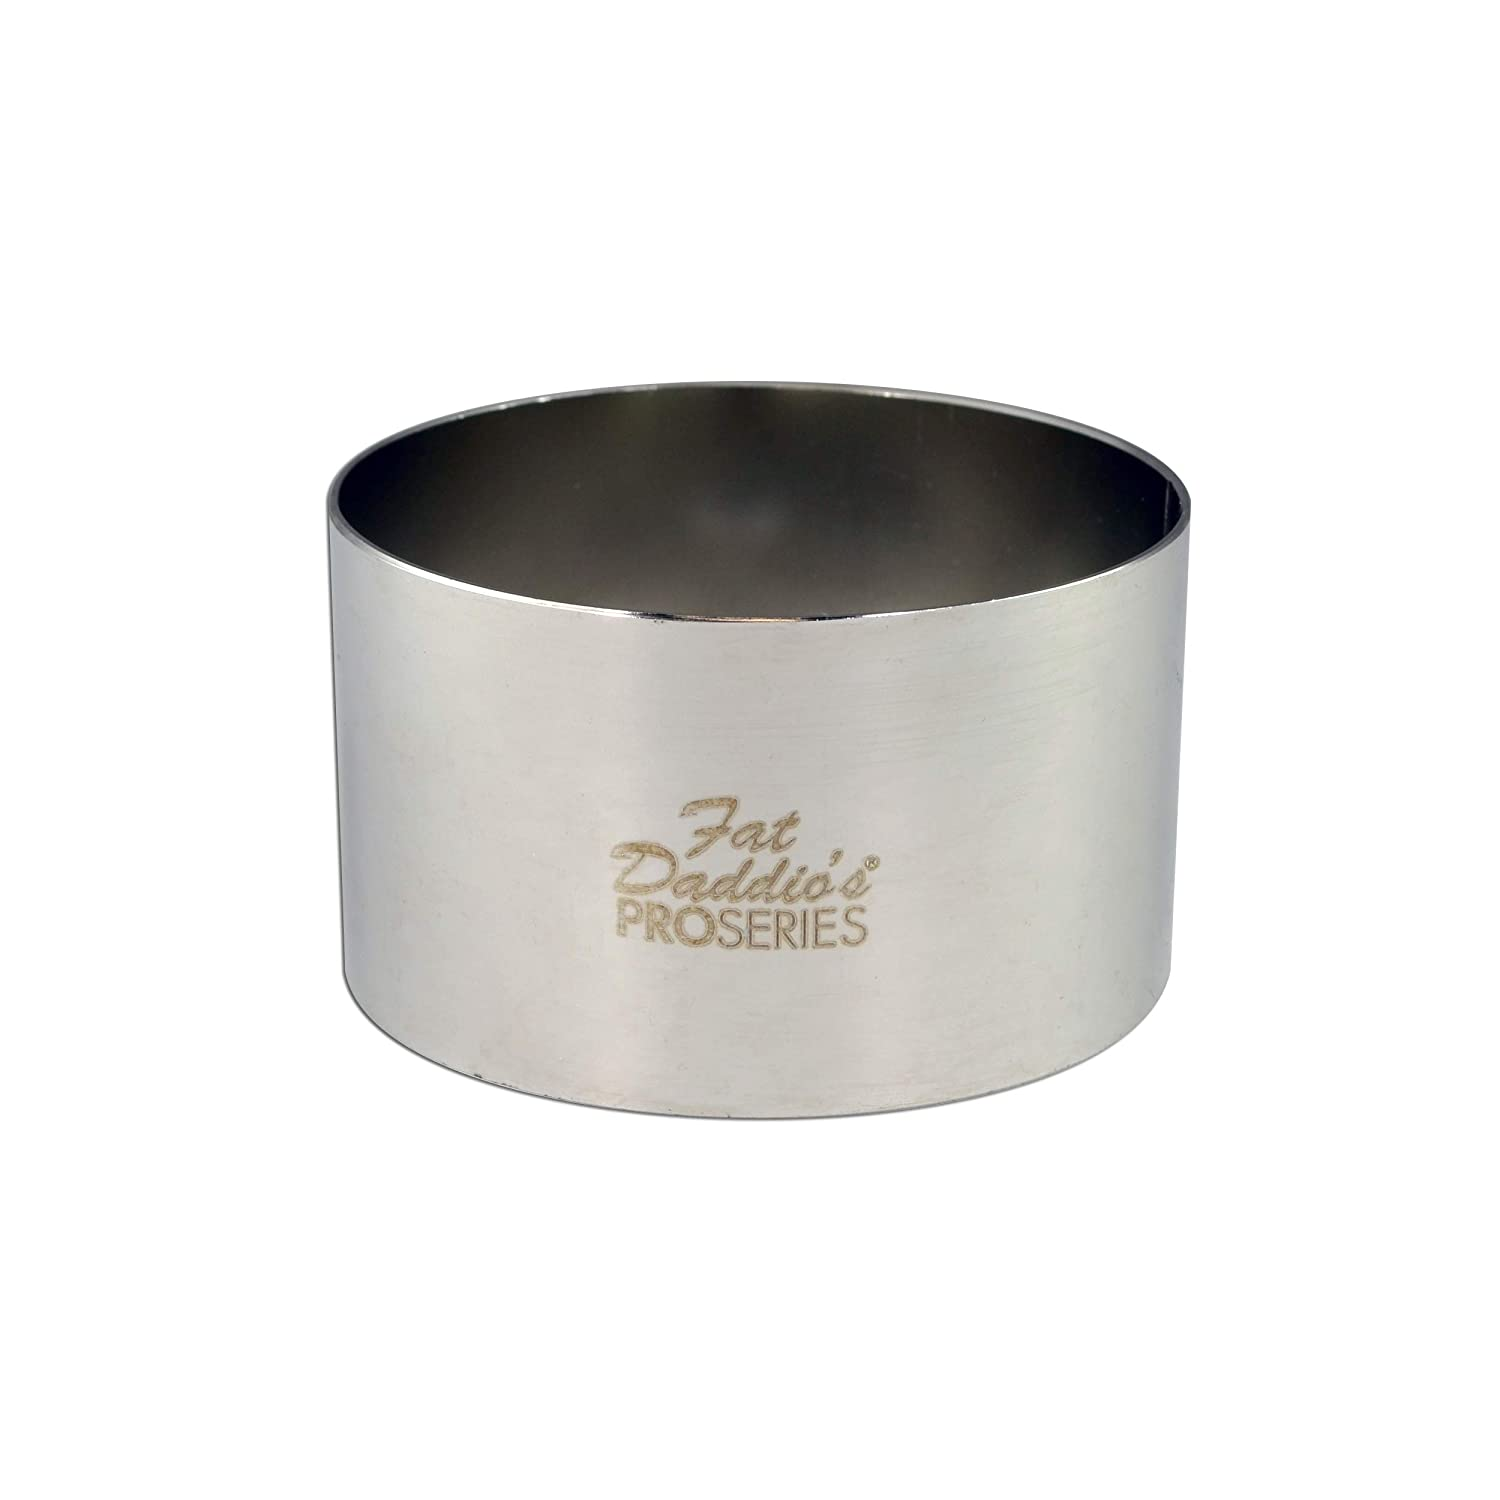 Fat Daddio's Stainless Steel Round Cake and Pastry Ring, 8 Inch x 2 Inch Fat Daddio's RRD-3045